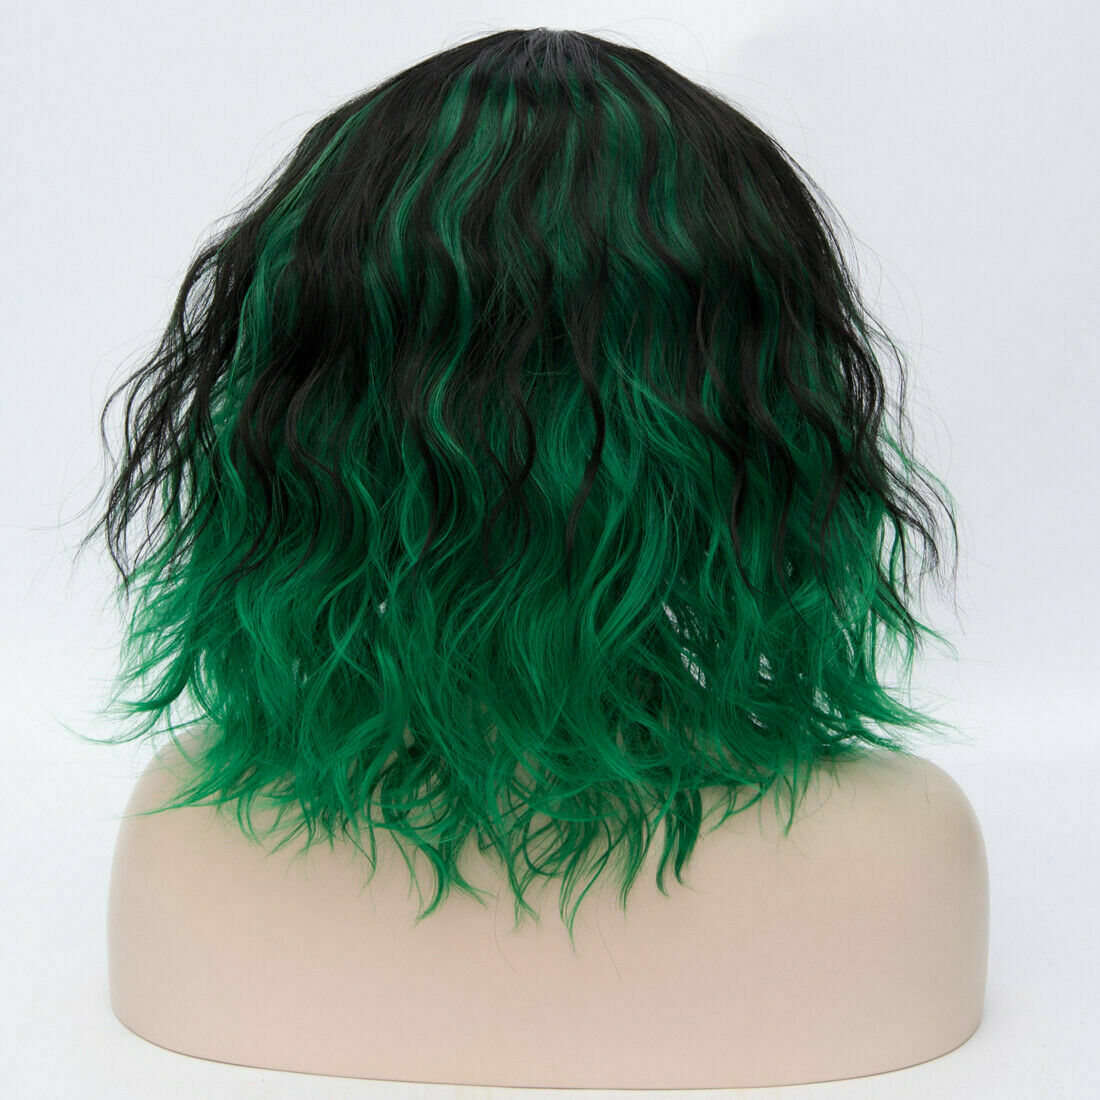 Lolita-Women-039-s-Short-Curly-Anime-Synthetic-Hair-Heat-Resistant-Cosplay-Party-Wig miniature 94